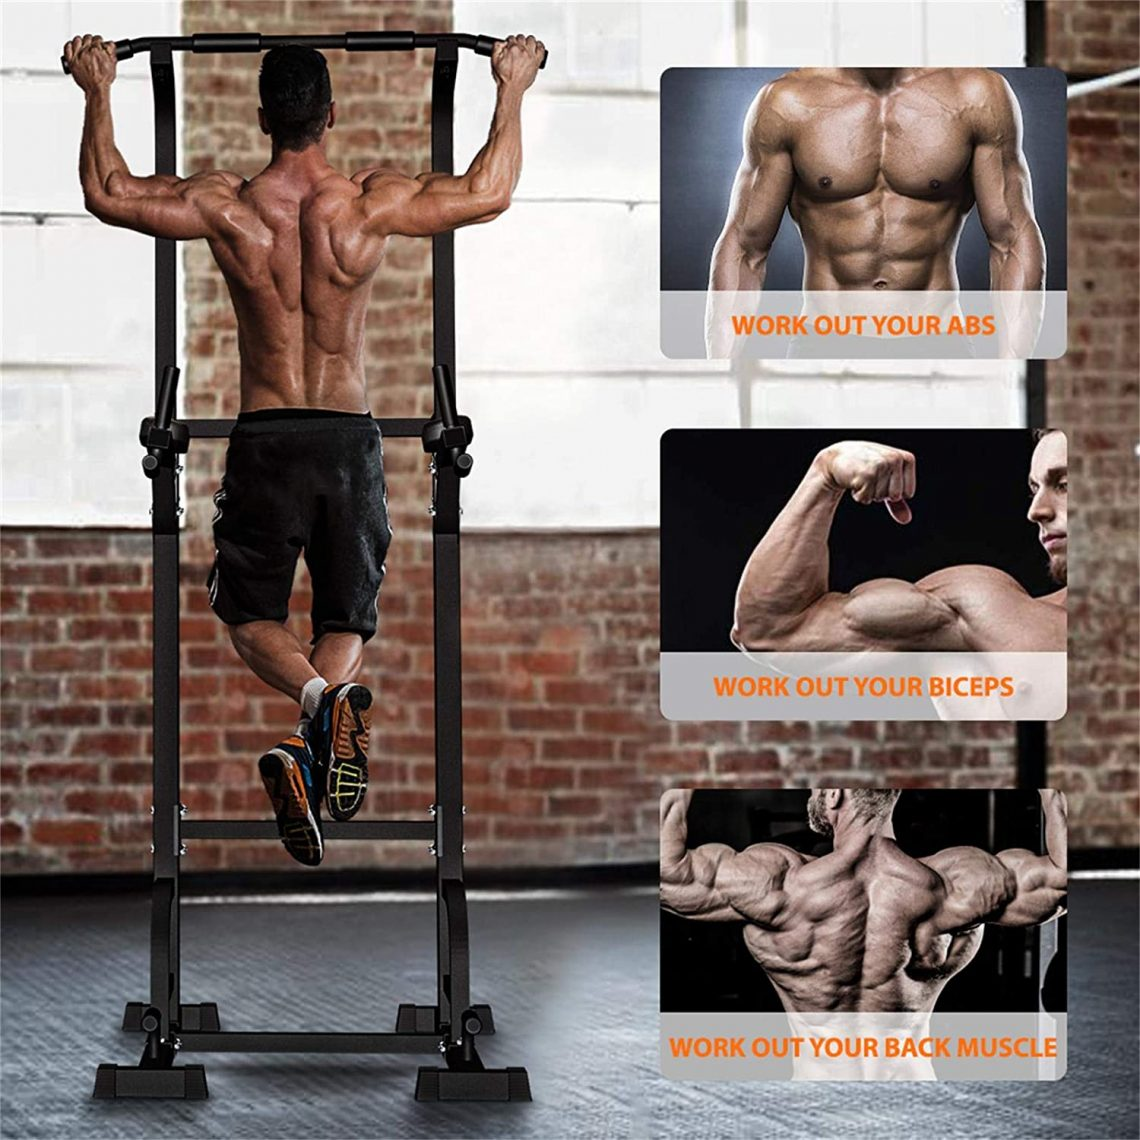 Sportsroyals-Power-Tower-Dip-Station-Pull-Up-Bar-for-Home-Gym-Strength-Training-Workout-Equipment-myfreeyoga.com